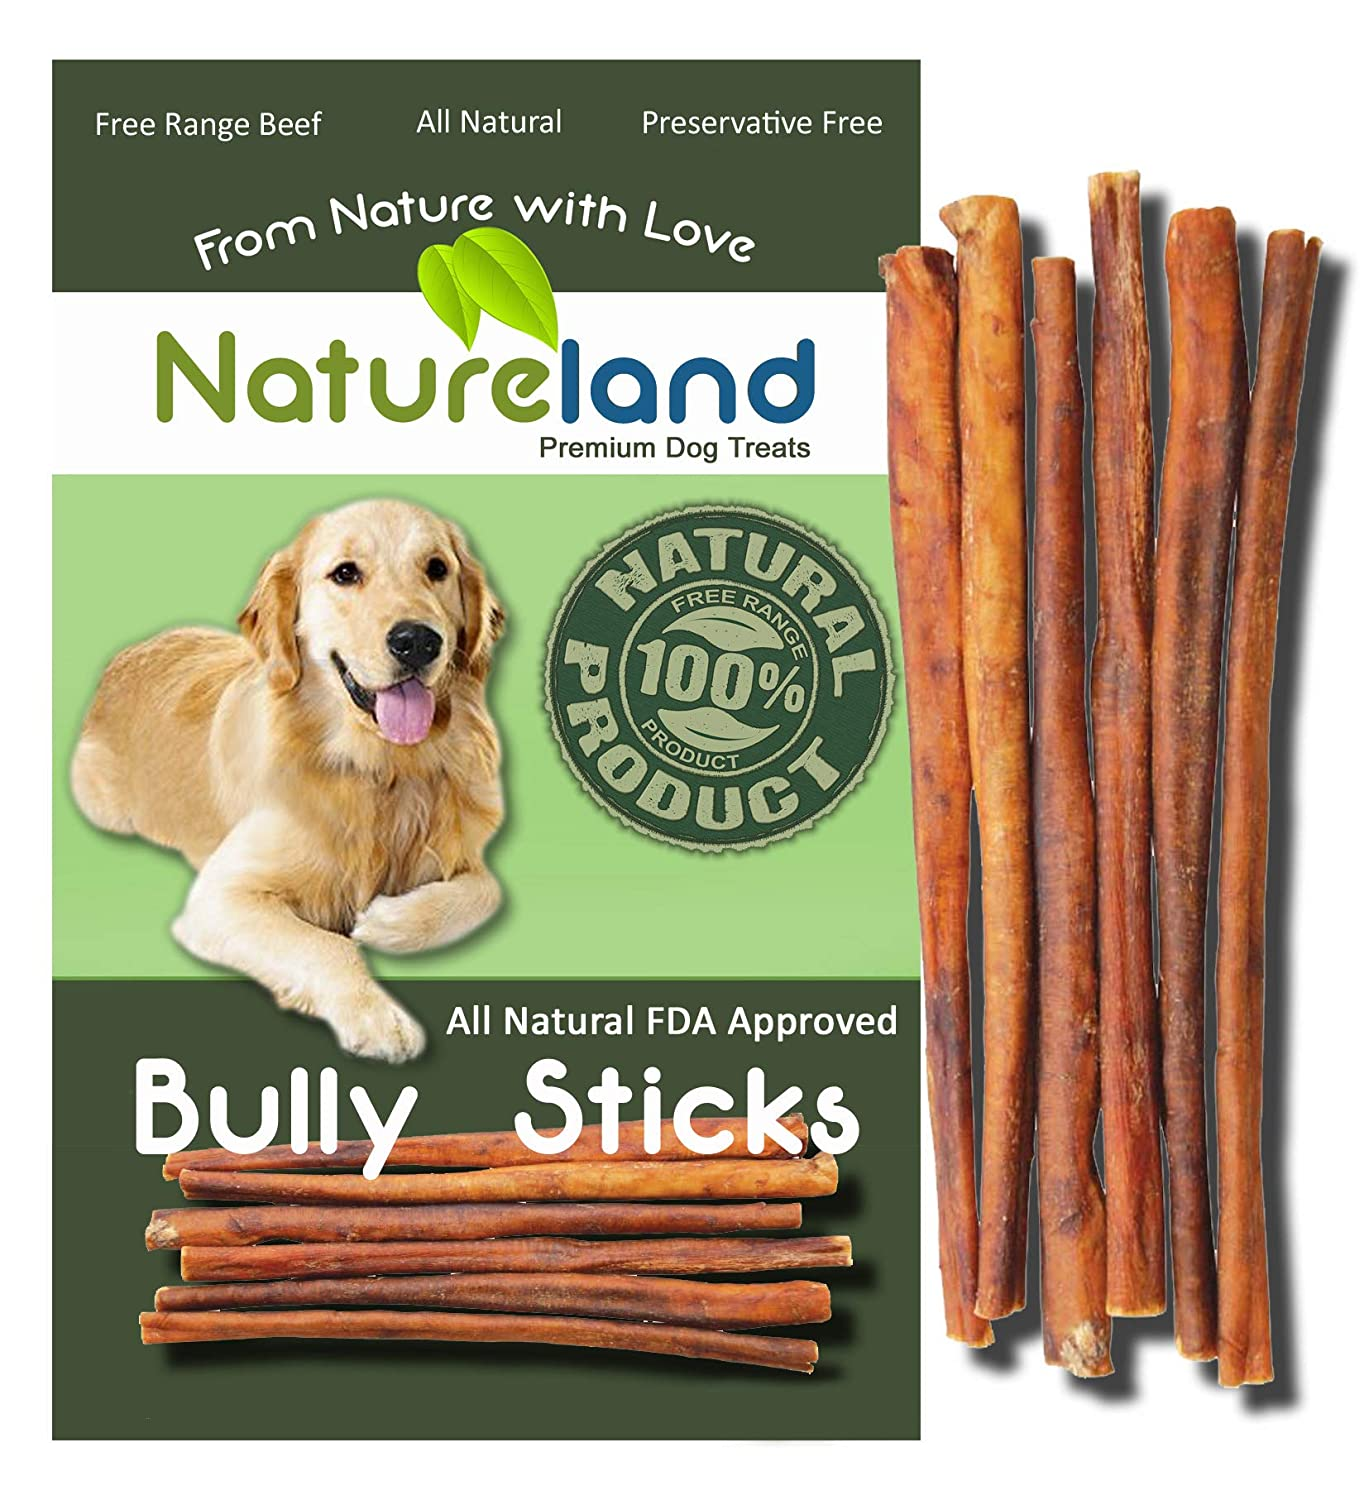 Natureland 6 Bully Sticks Standard Thickness – All-Natural, Free-Range, Grass-Fed, 100 Beef Dog Chews